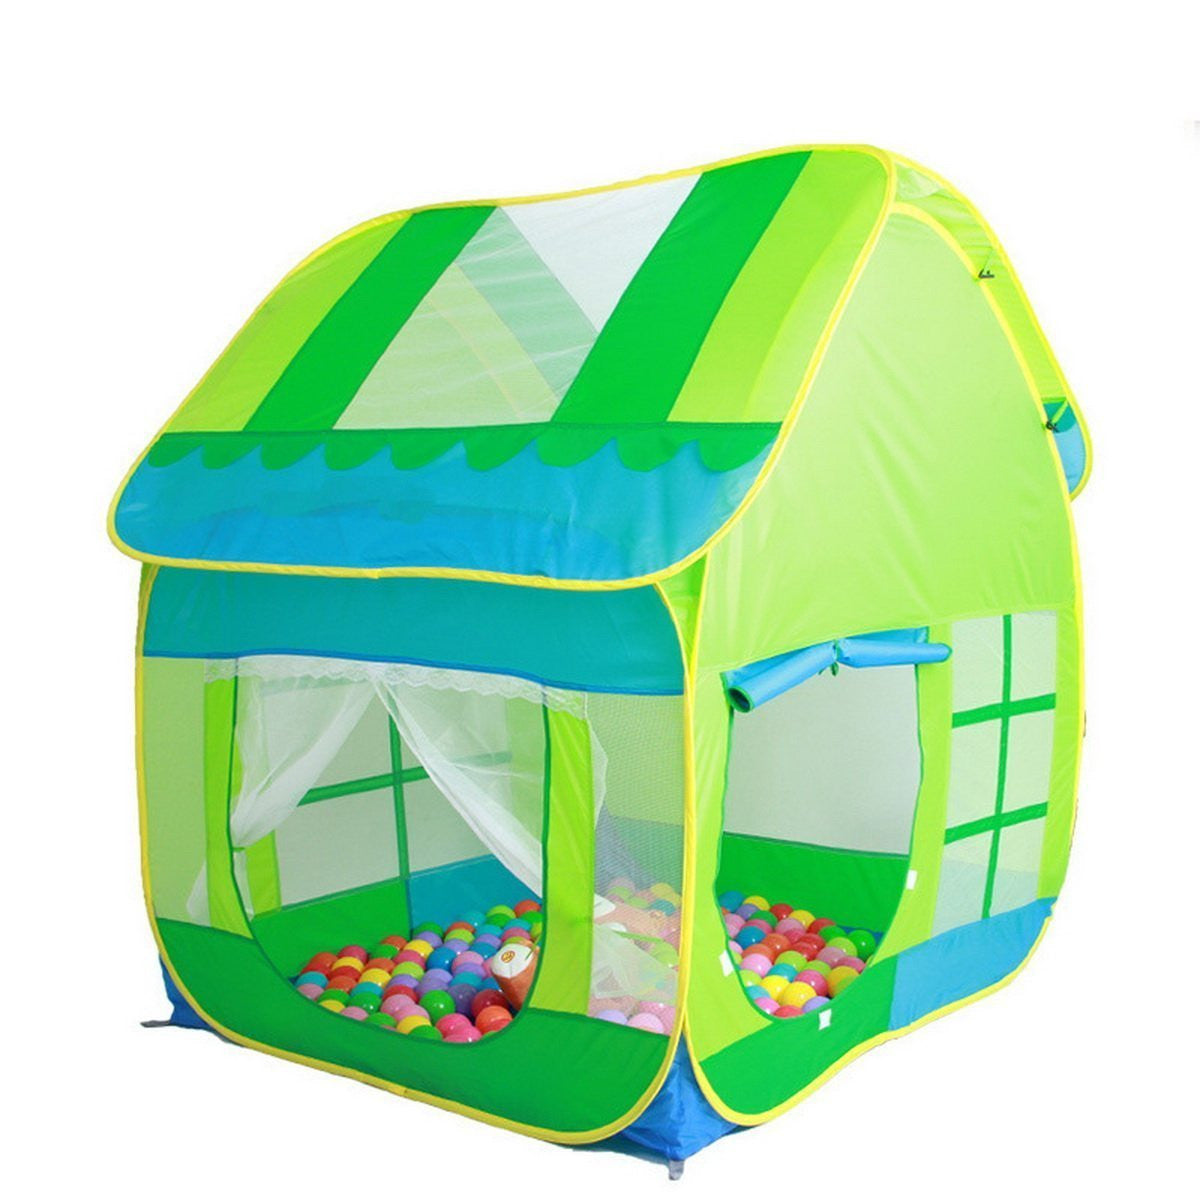 Truedays Kids Adventure Big Green Pop up Play Tent Indoor or Outdoor Tunnel Pool Ball Not Include u2026  sc 1 st  TRUEDAYS & Truedays Kids Adventure Big Green Pop up Play Tent Indoor or ...